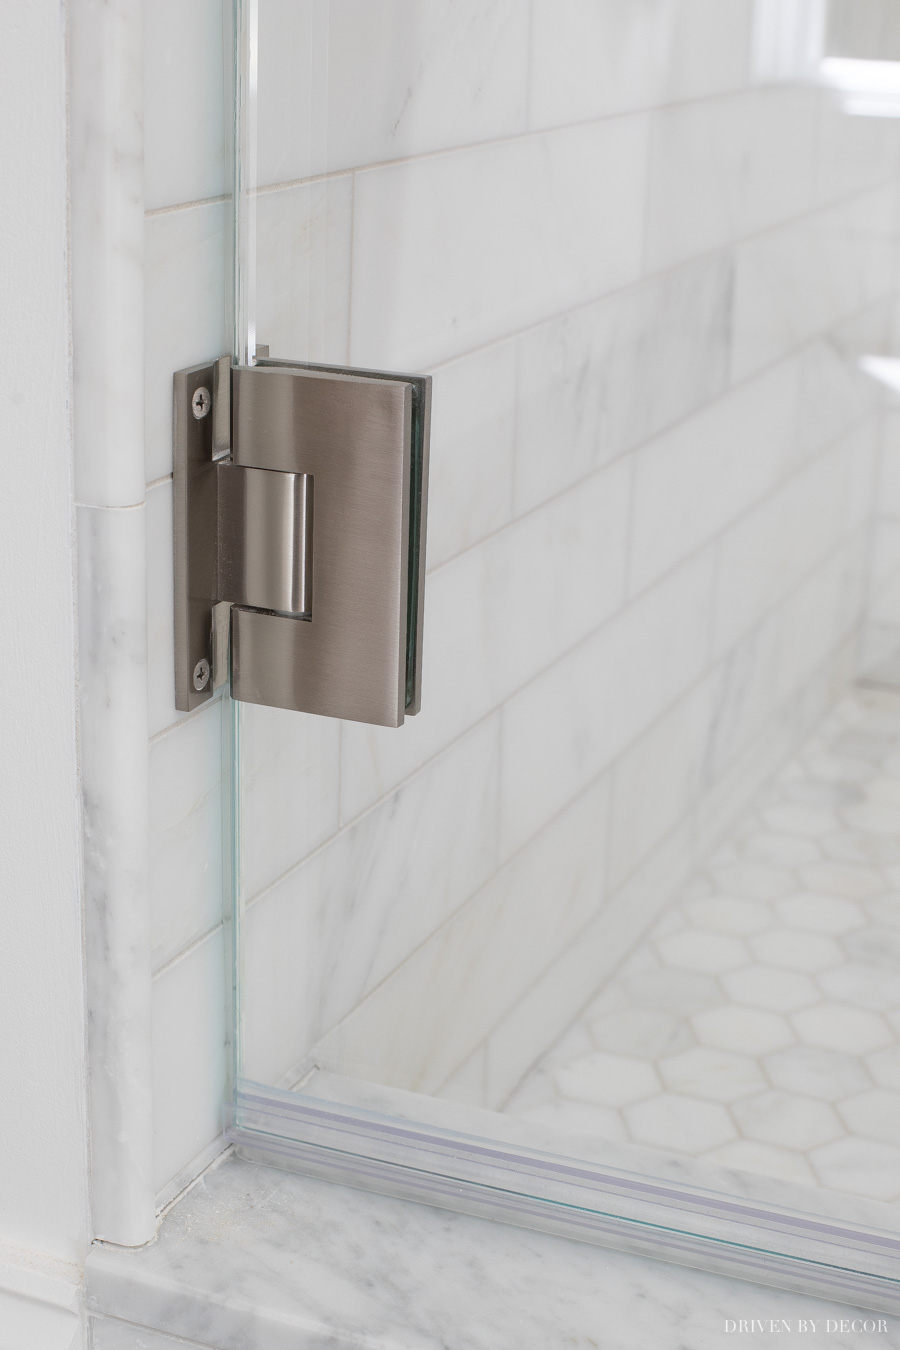 Wall hinge of glass shower enclosures